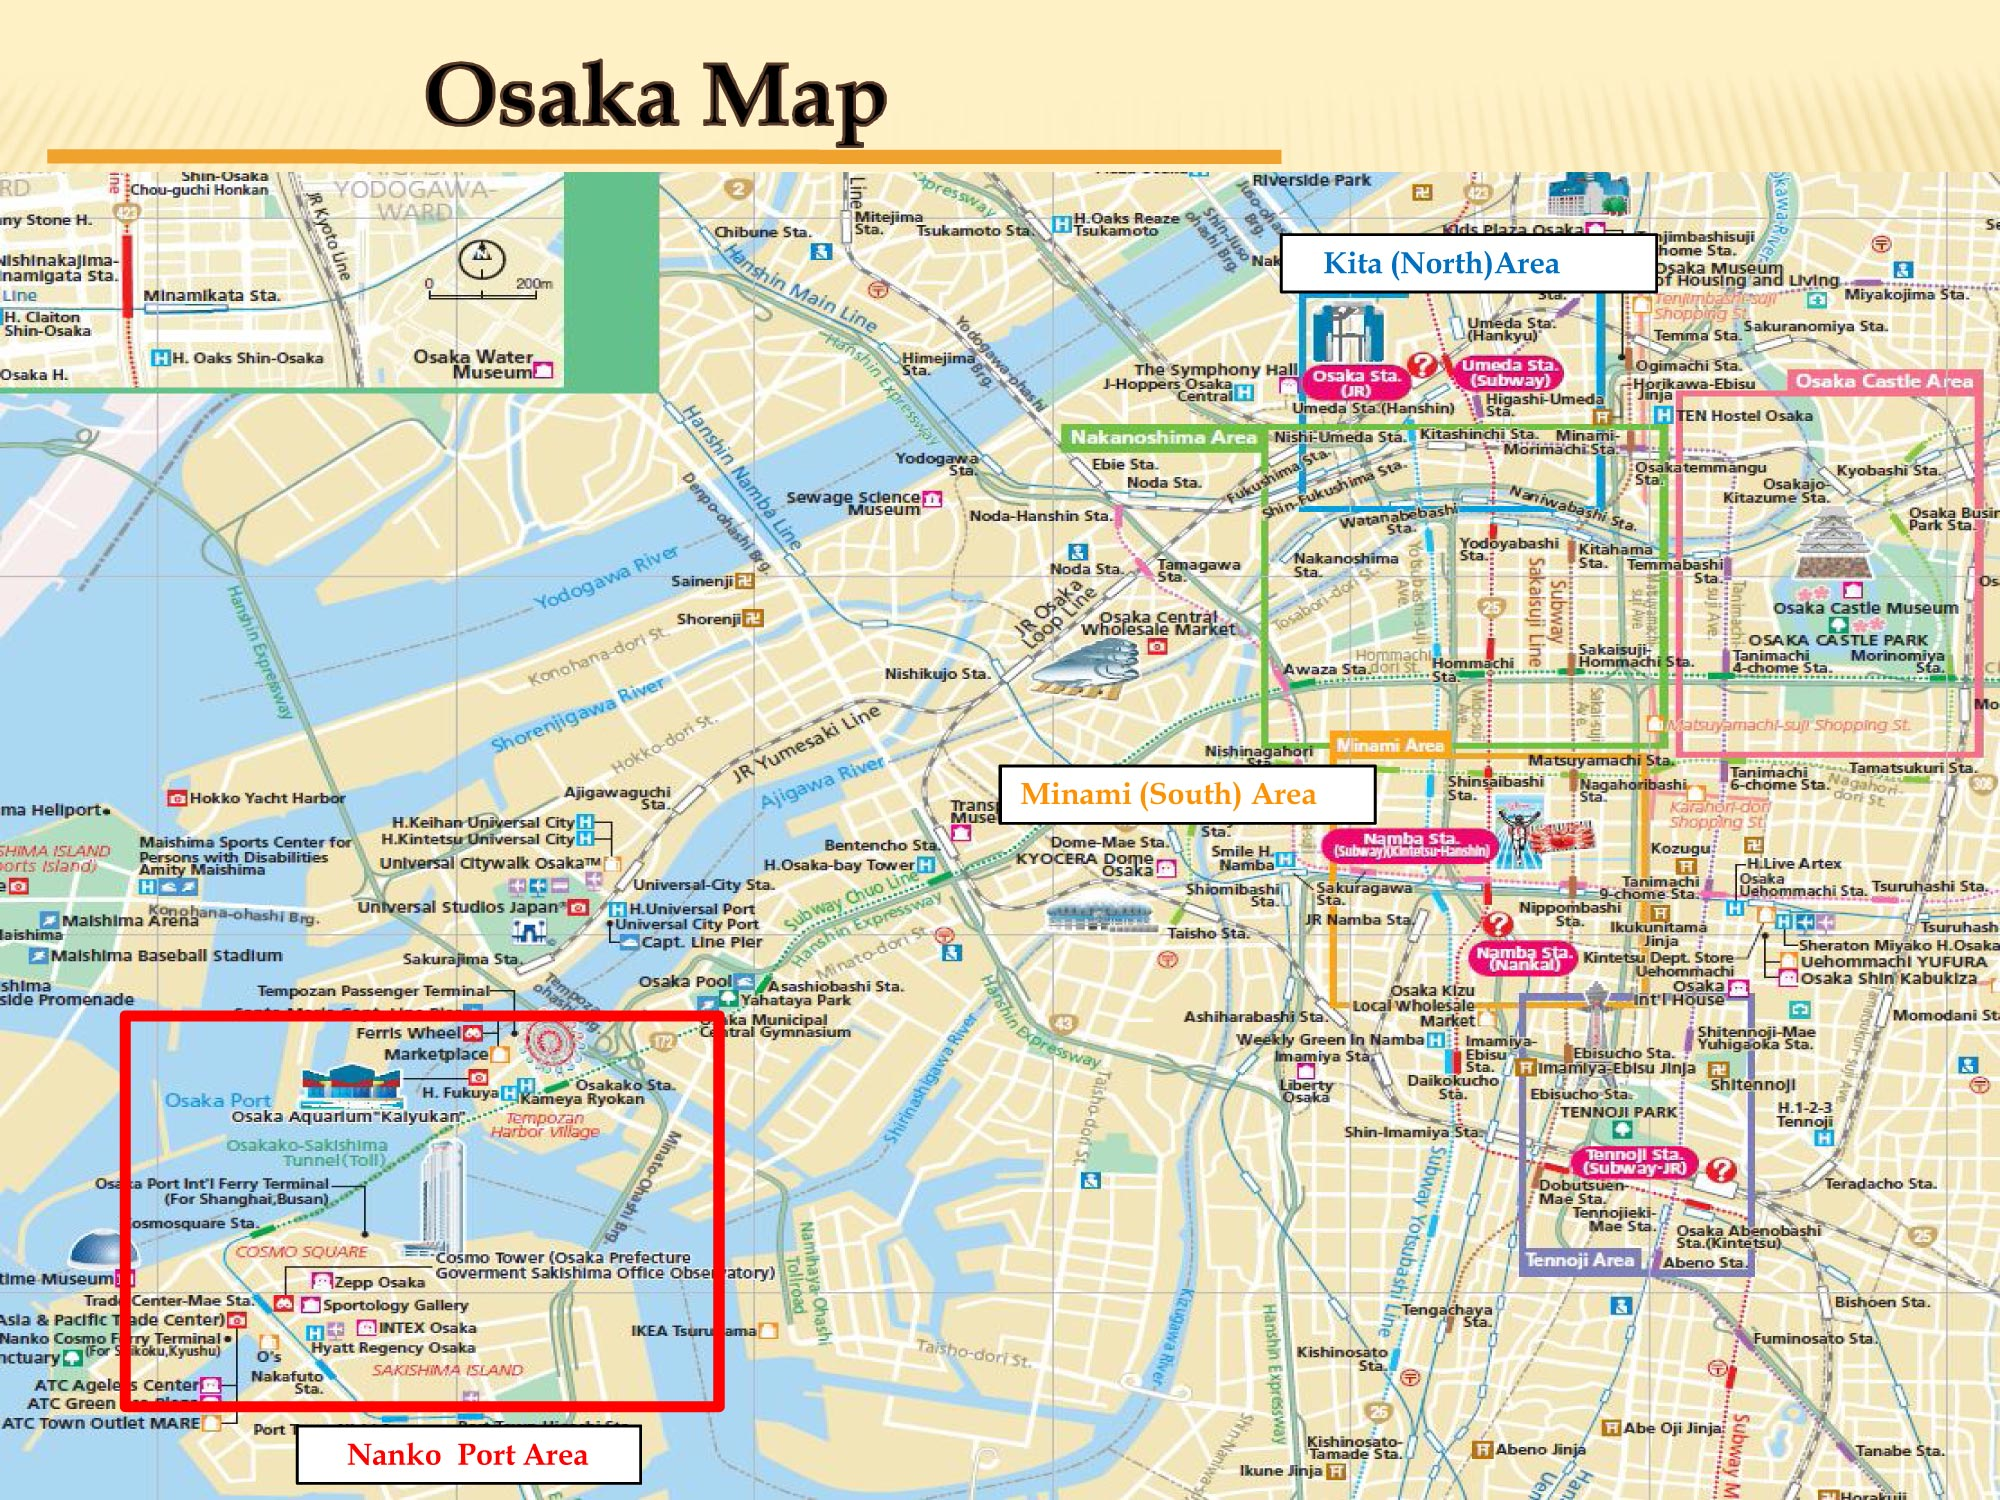 Osaka Cruise Port Guide CruisePortWikicom